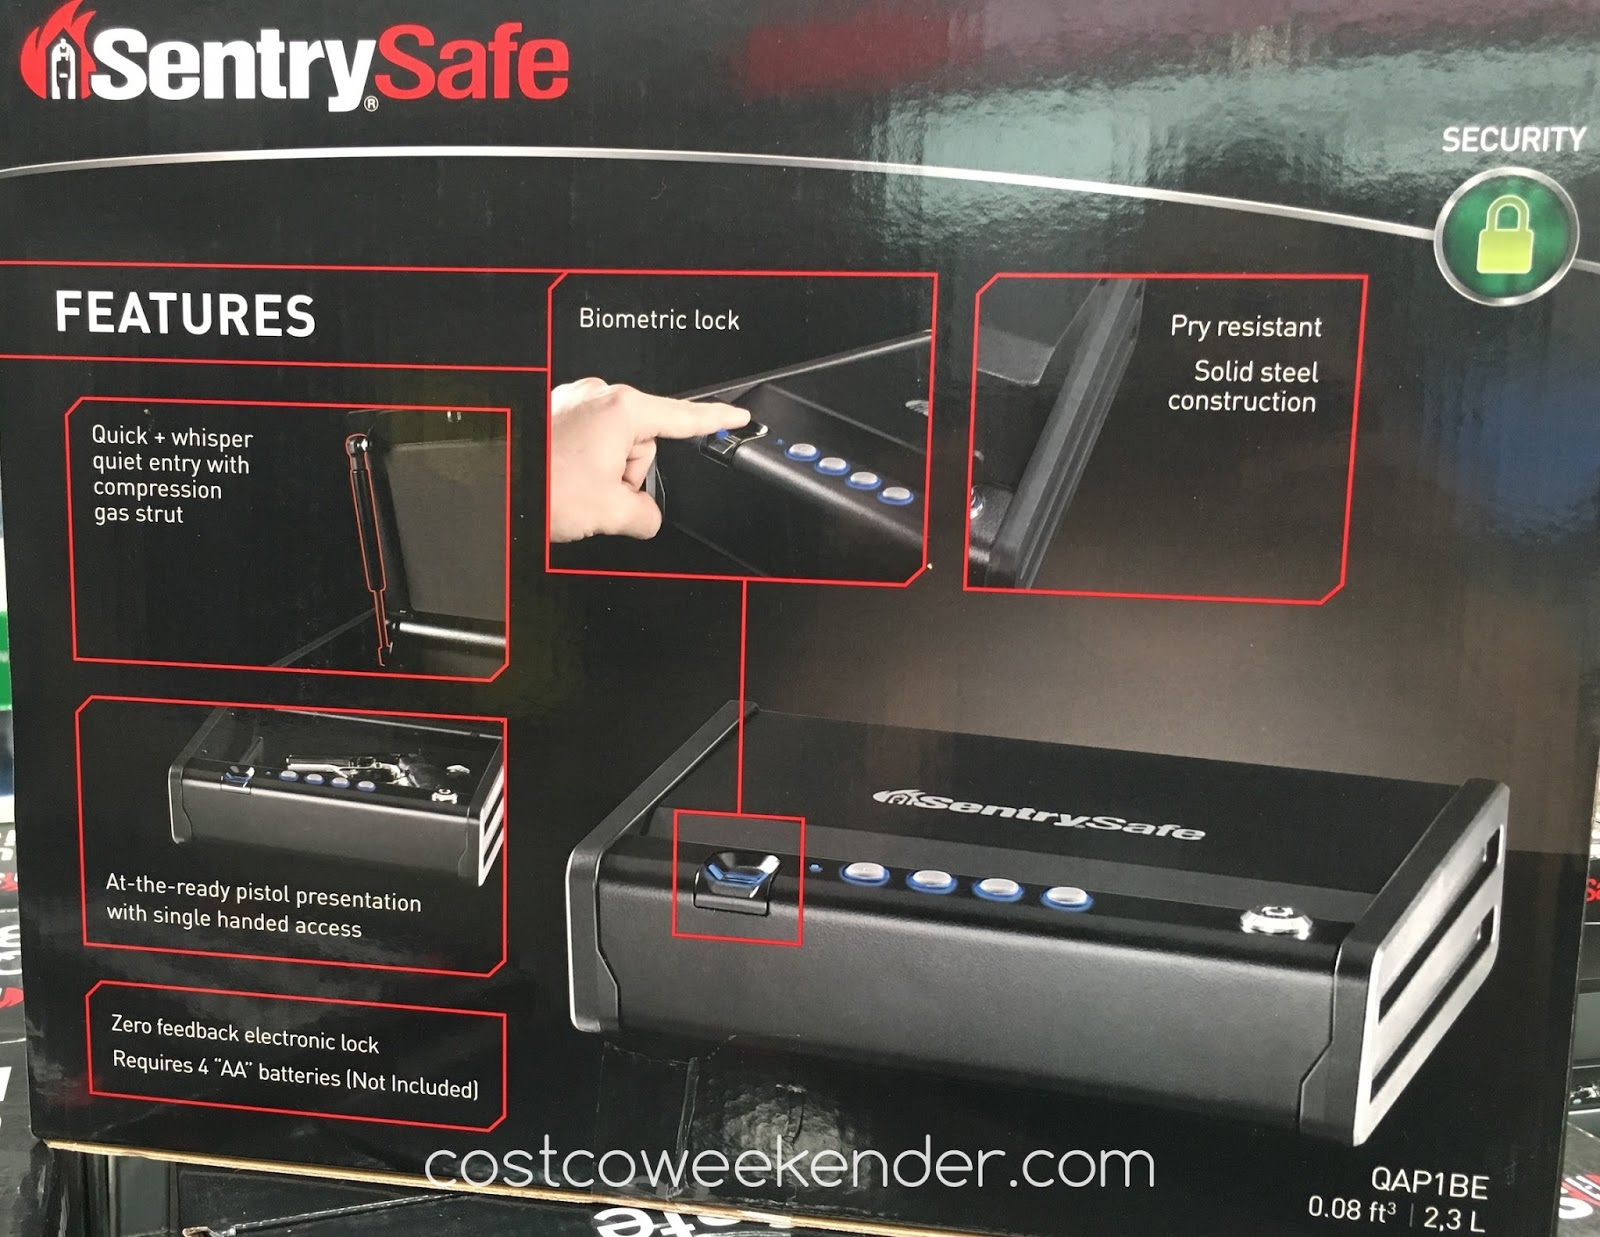 Costco 841165 - Sentry Safe Quick Access Biometric Pistol Safe - keeps your firearm away from the wrong hands